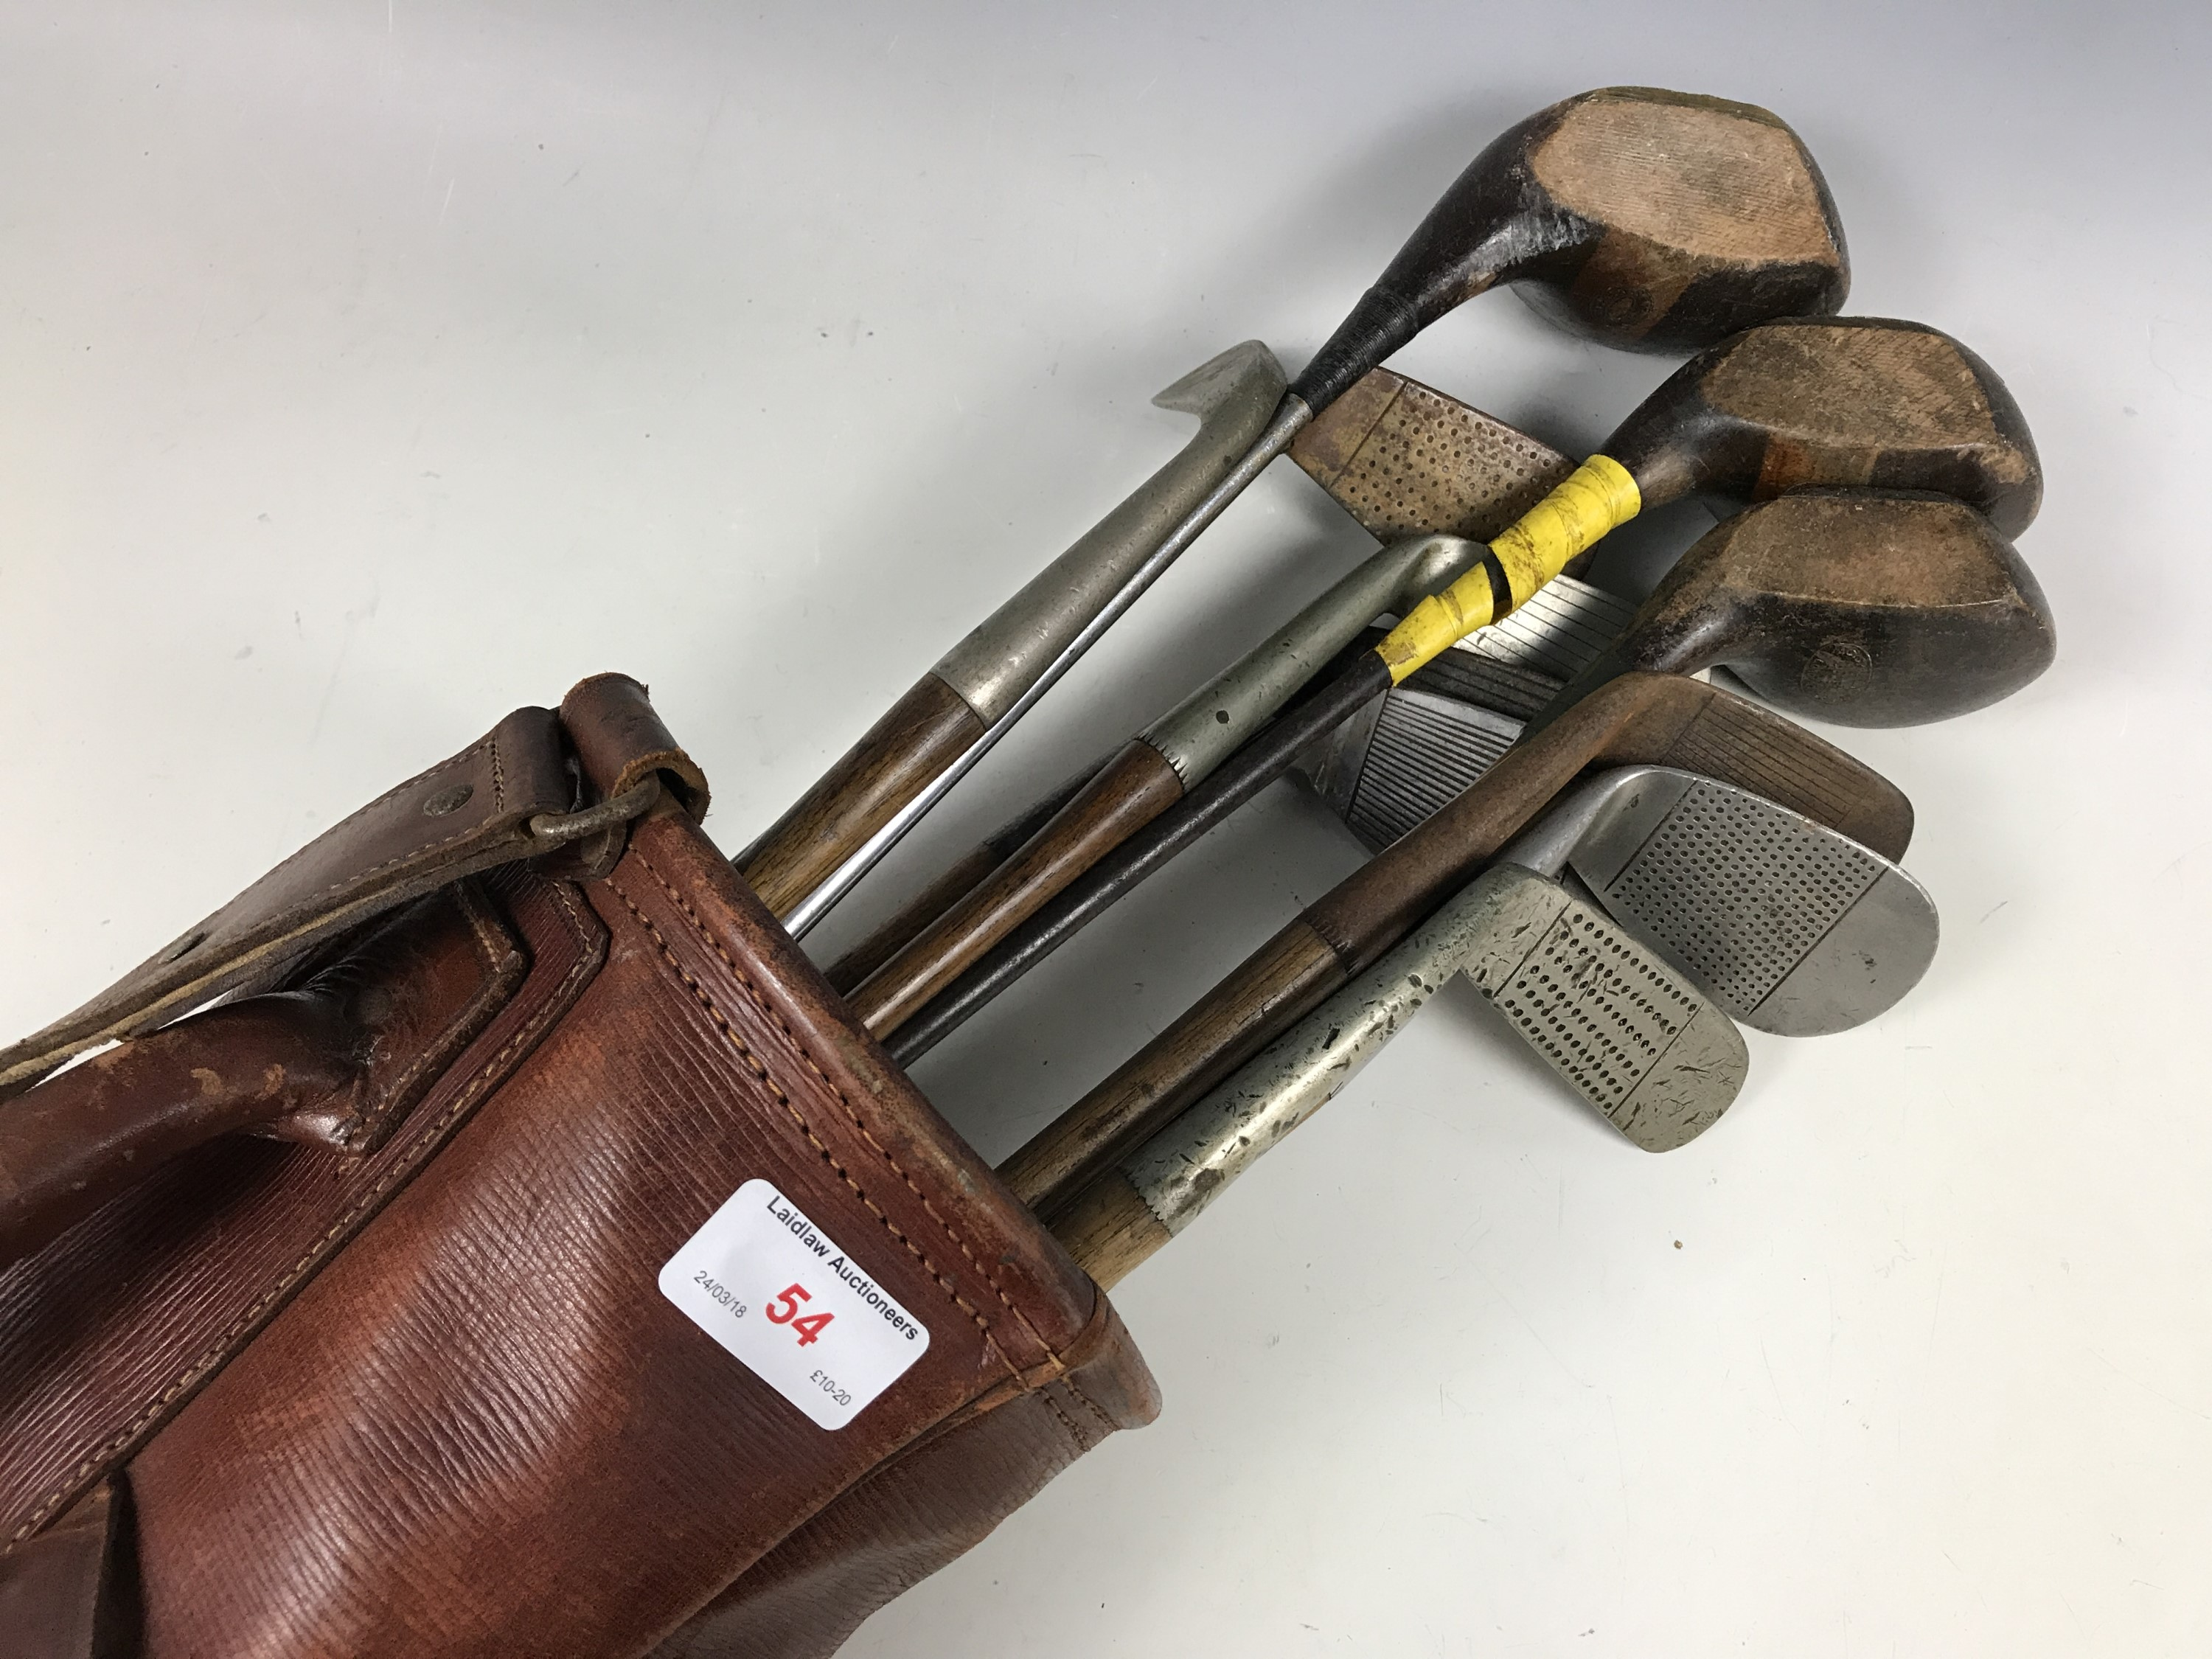 Lot 54 - A vintage canvas and hide golf bag with sundry hickory-shafted clubs by Saint Andrews, Seascale,